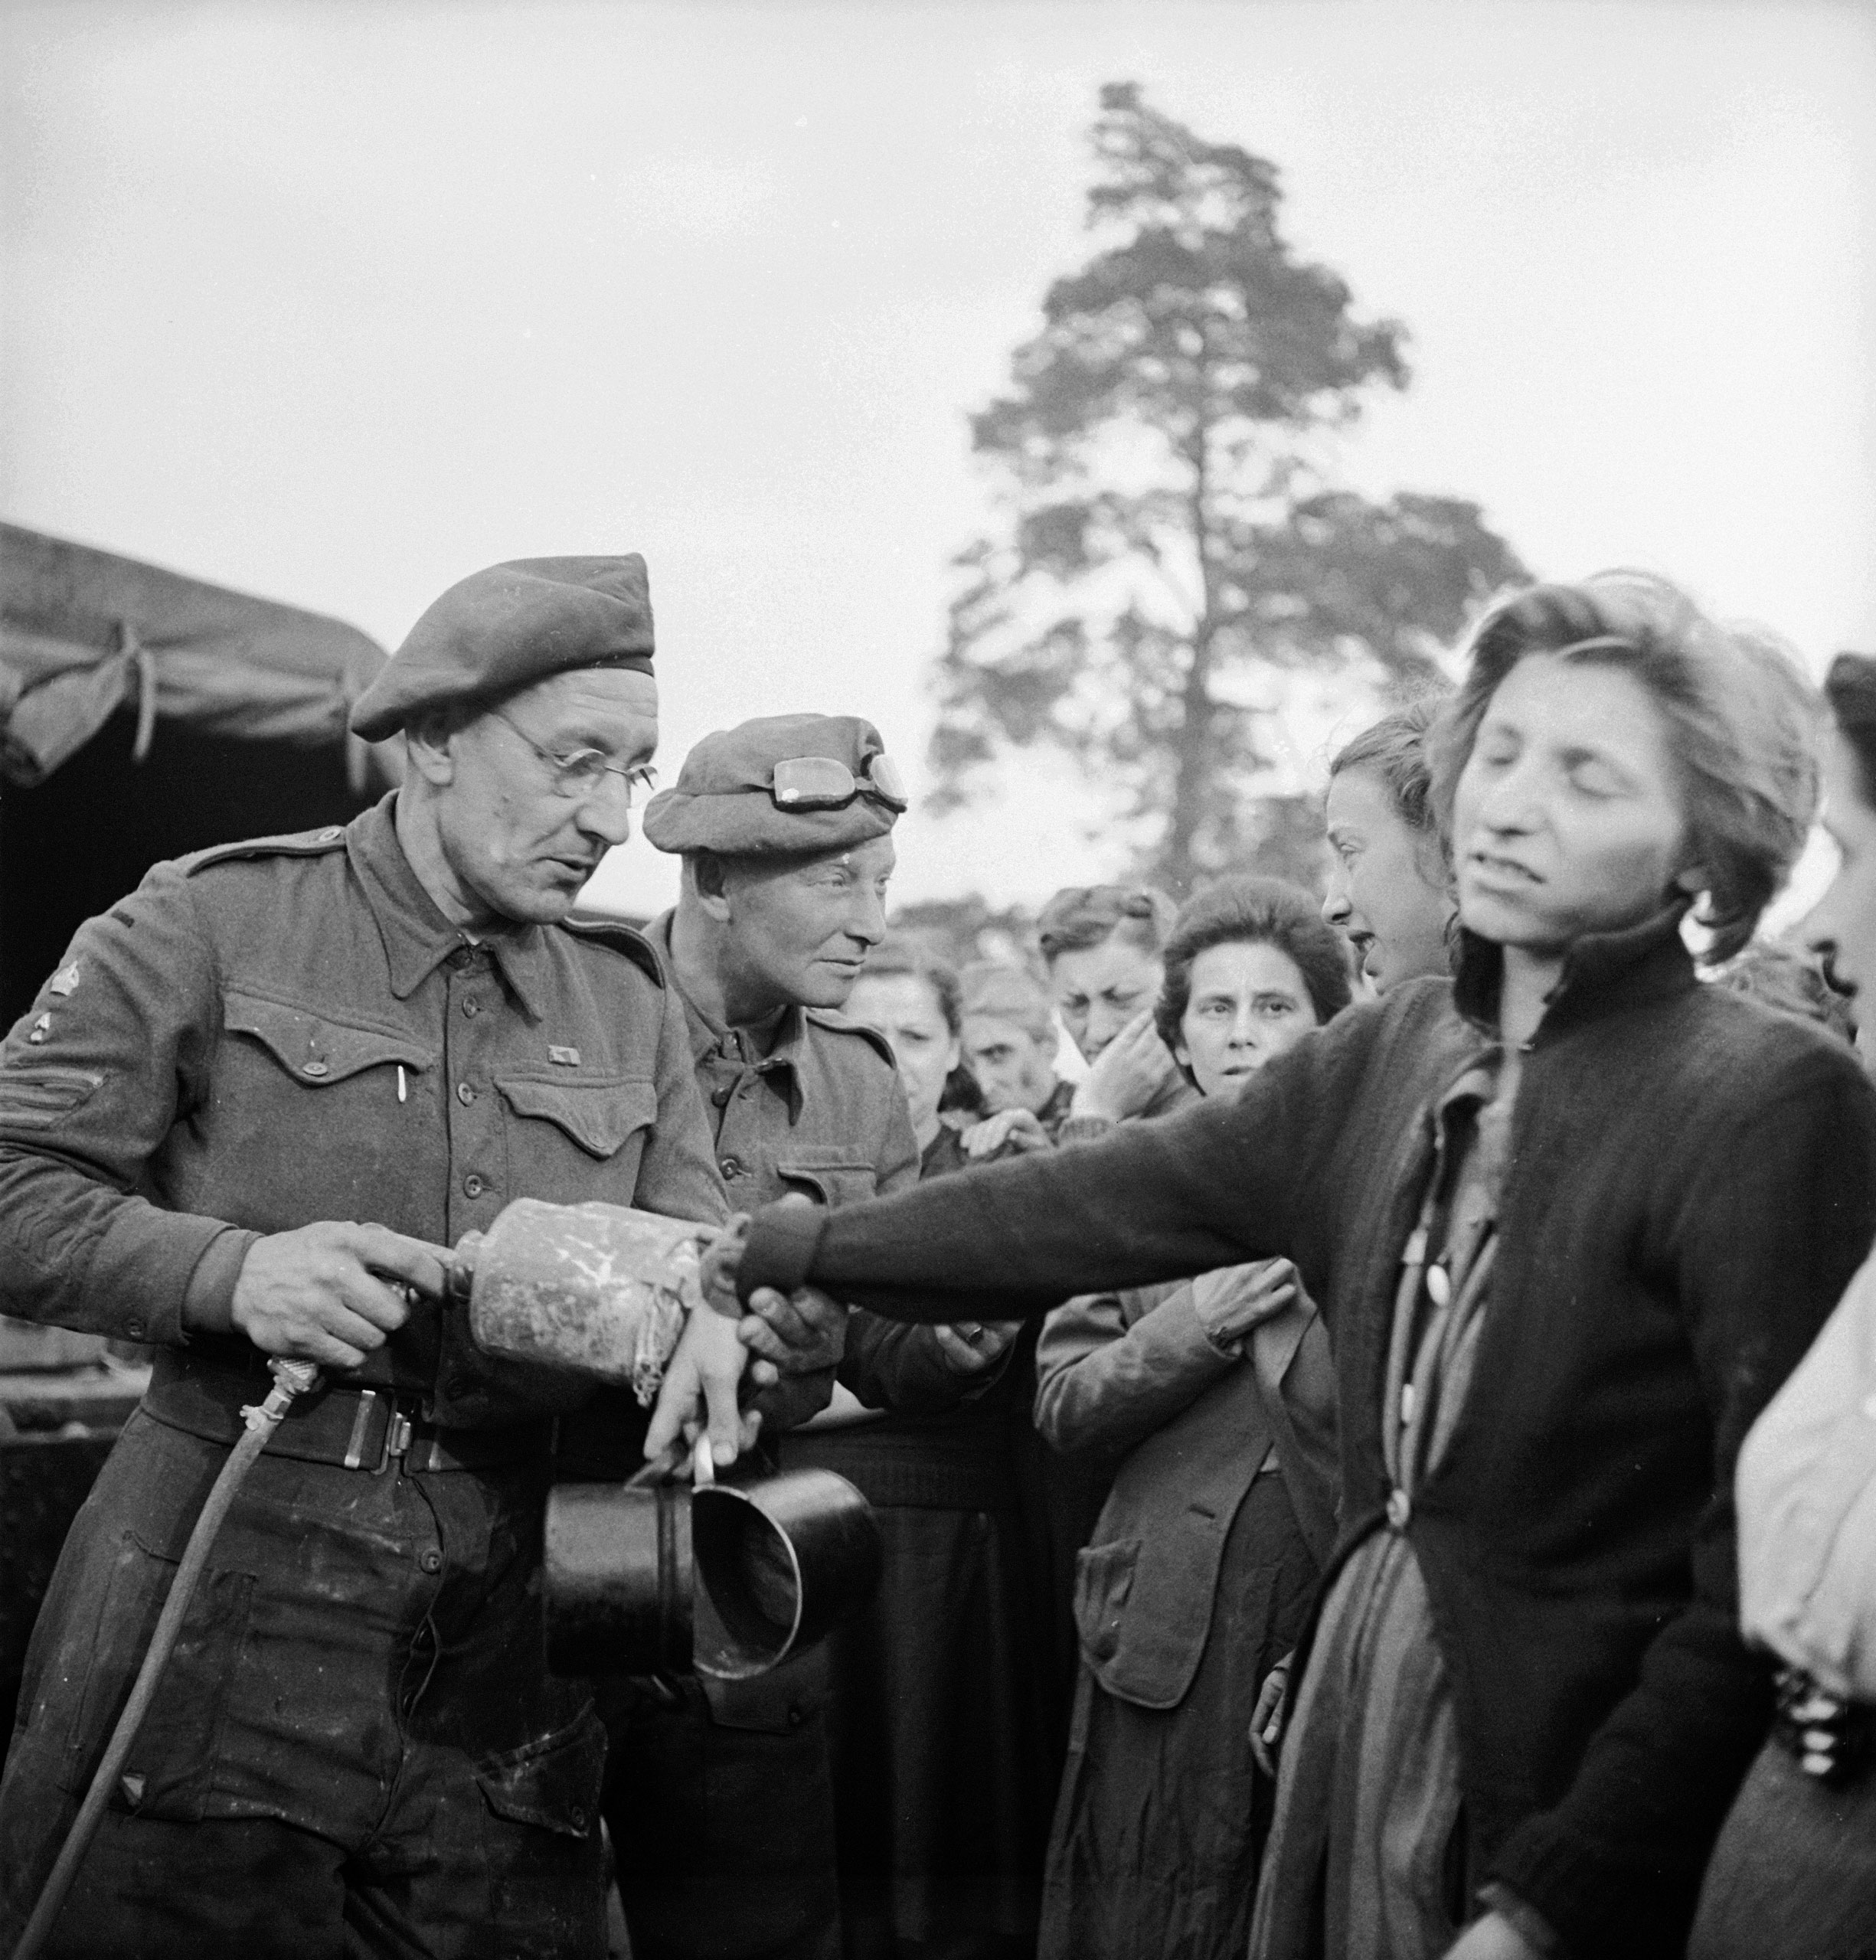 British doctors using DDT to delouse newly liberated prisoners at the Bergen-Belsen concentration cam, 1945.